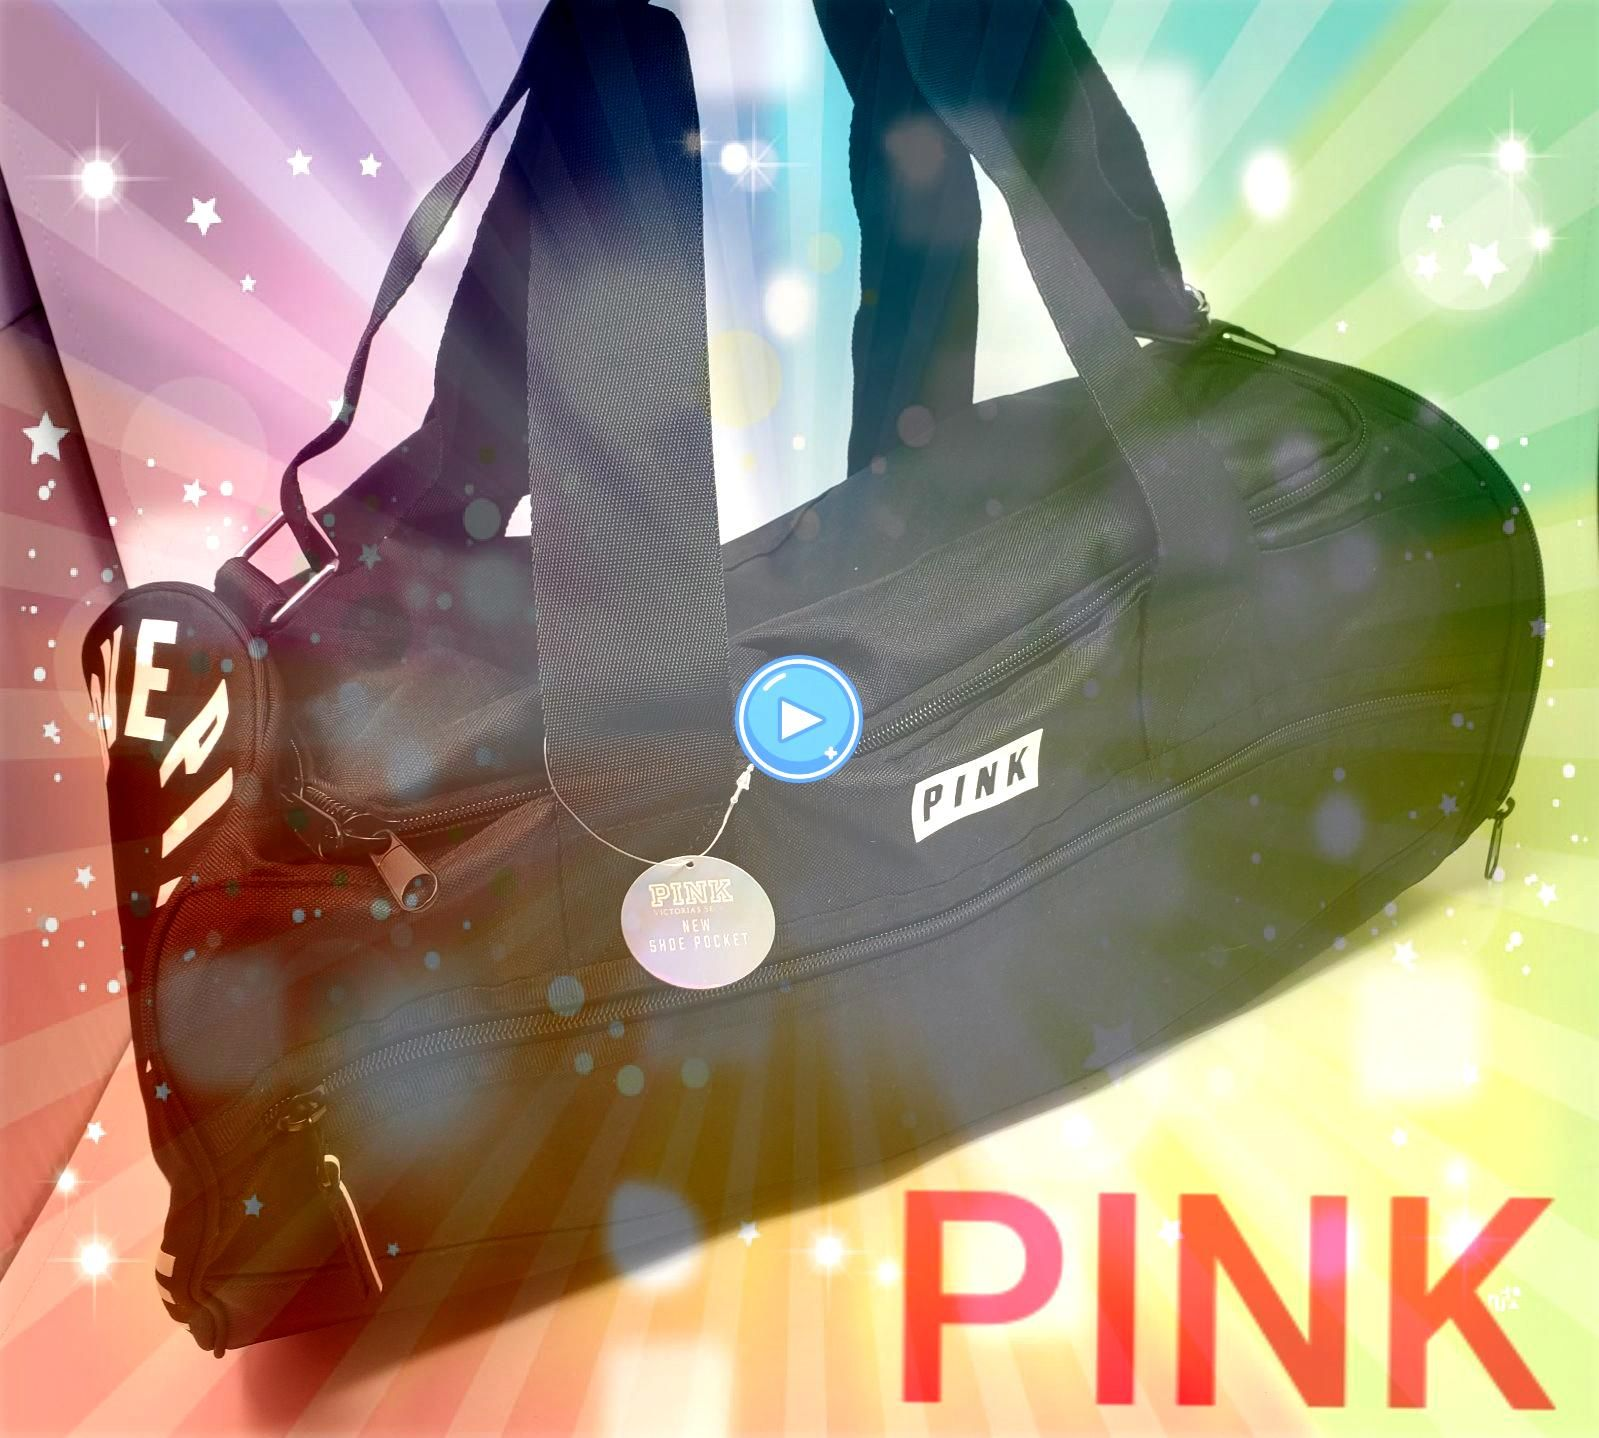 new with tags Very rare find This duffle bag has a zippered side opening for shoes and a front zippered pocket Price is firm Measures roughly 20 x 10 x 10 Please check ou...